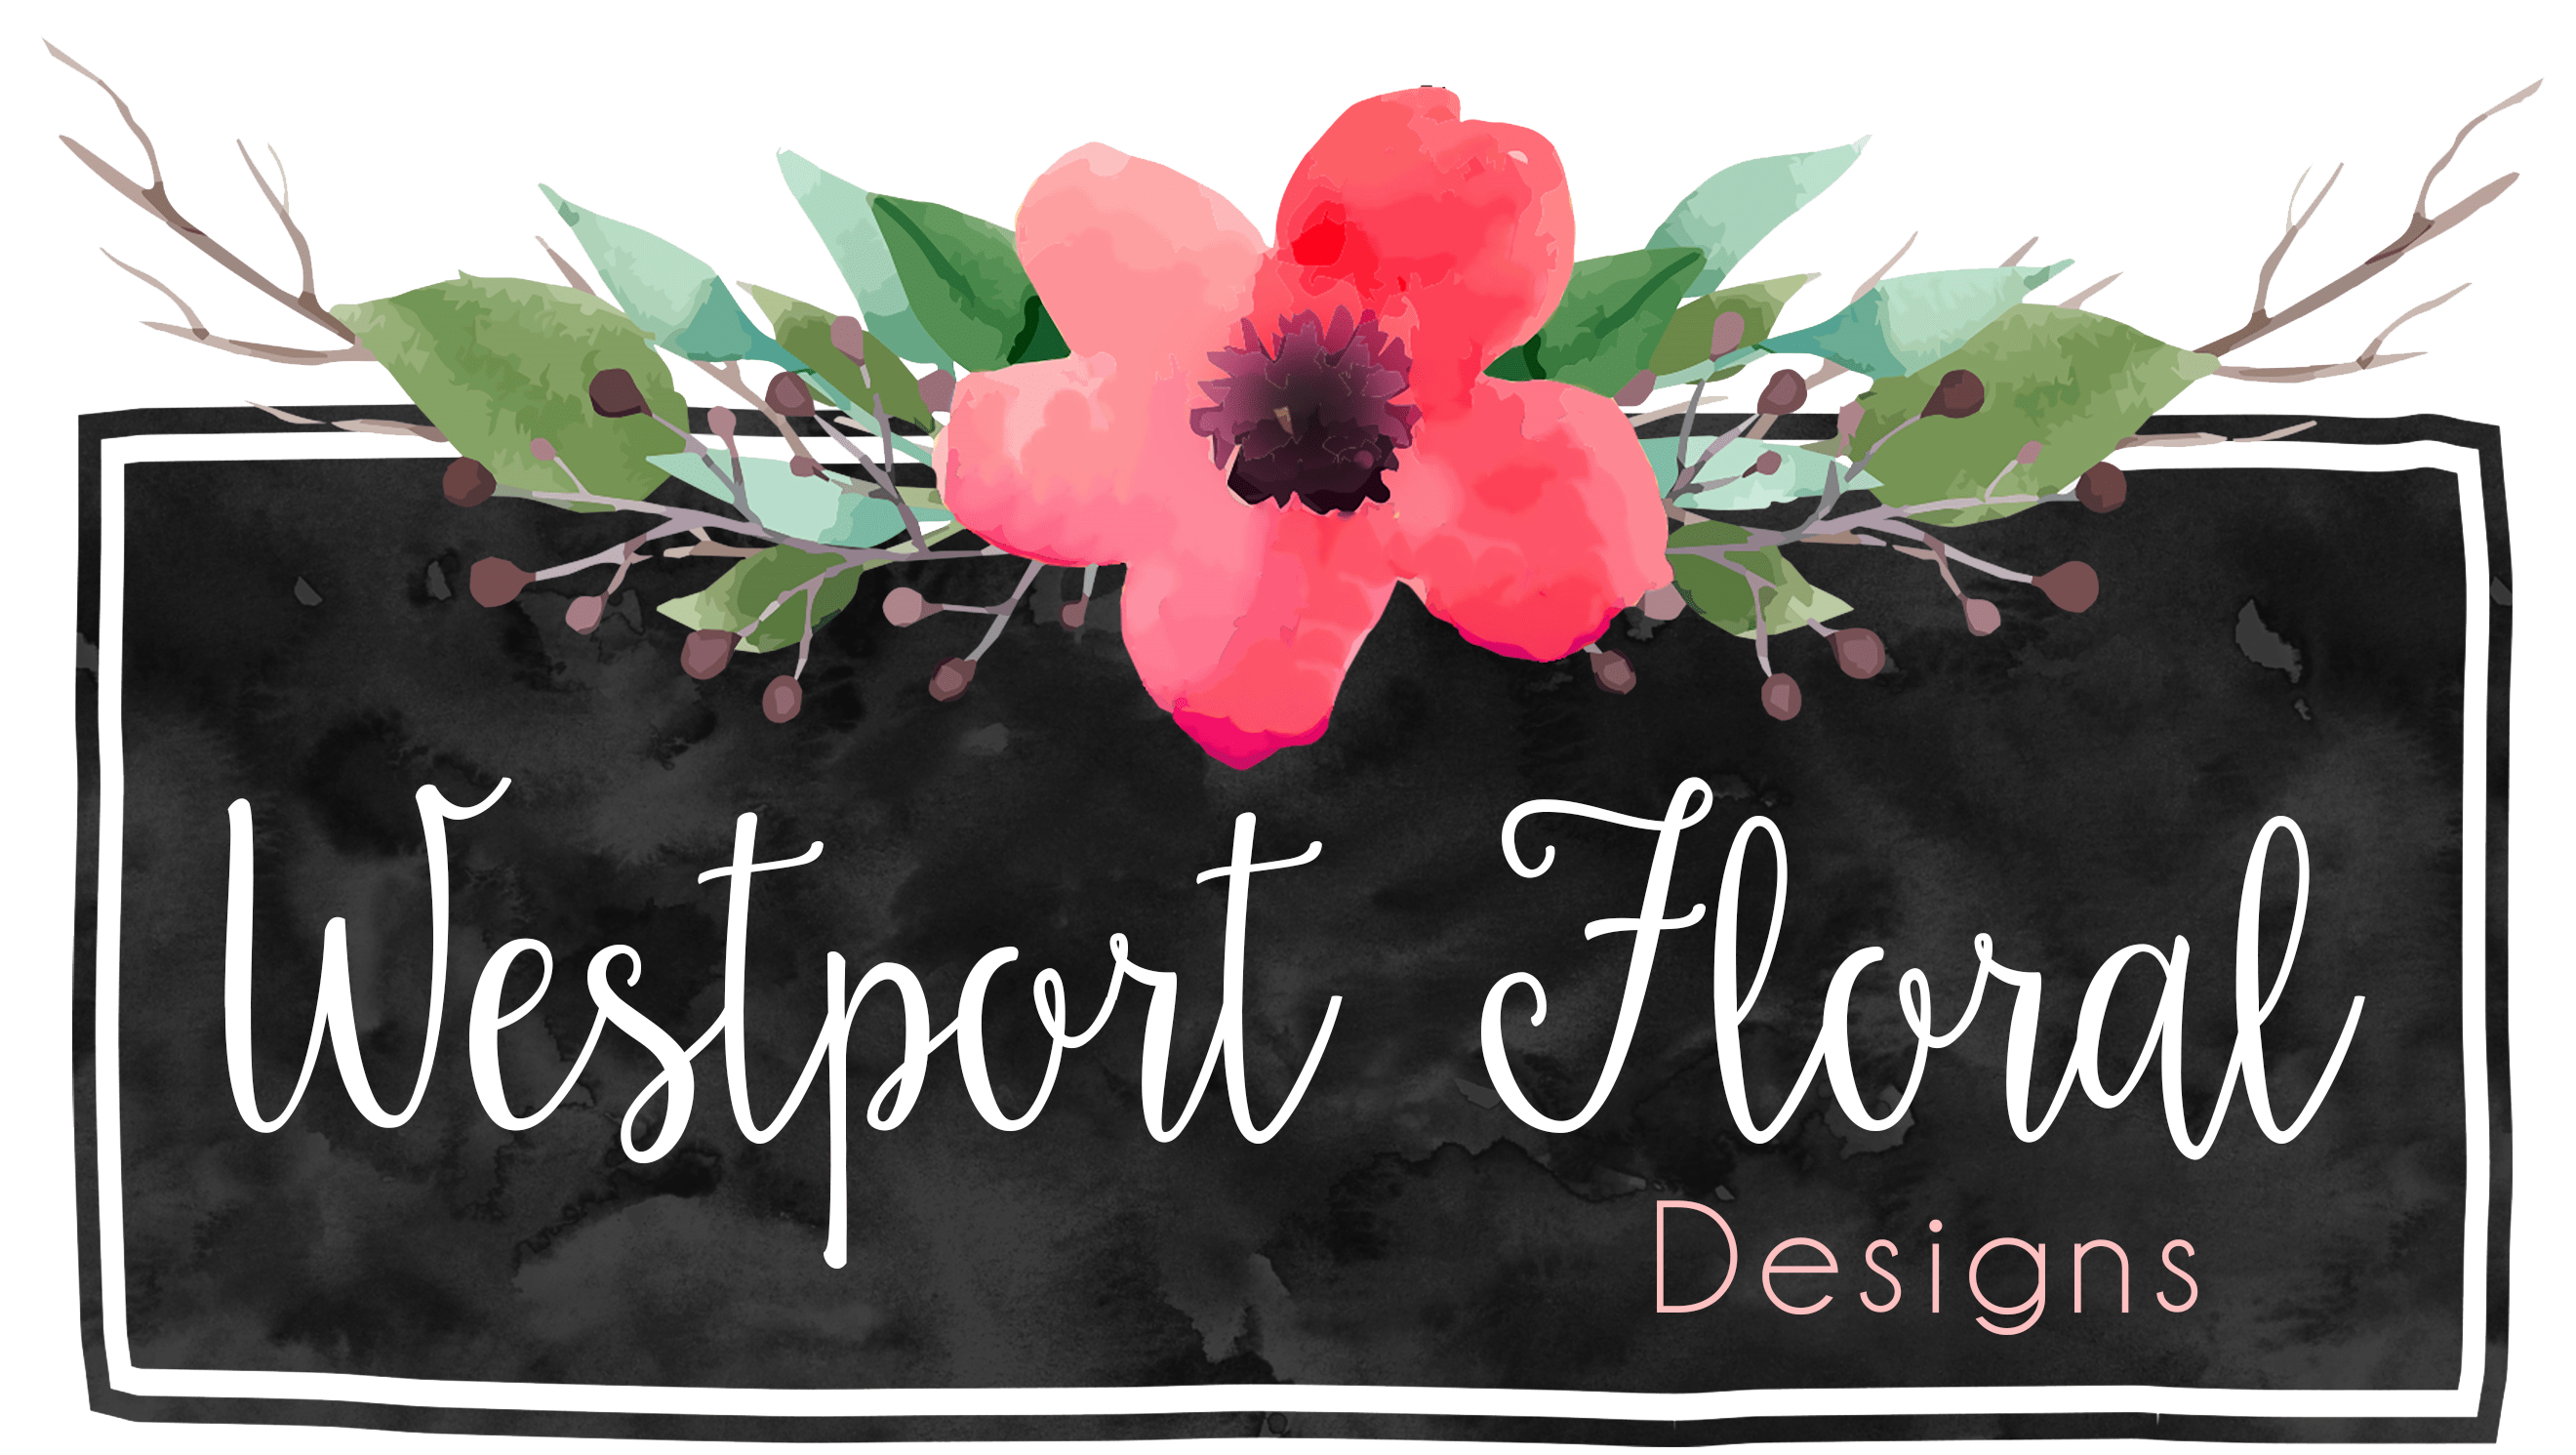 Kansas City Florist Flower Delivery By Westport Floral Designs